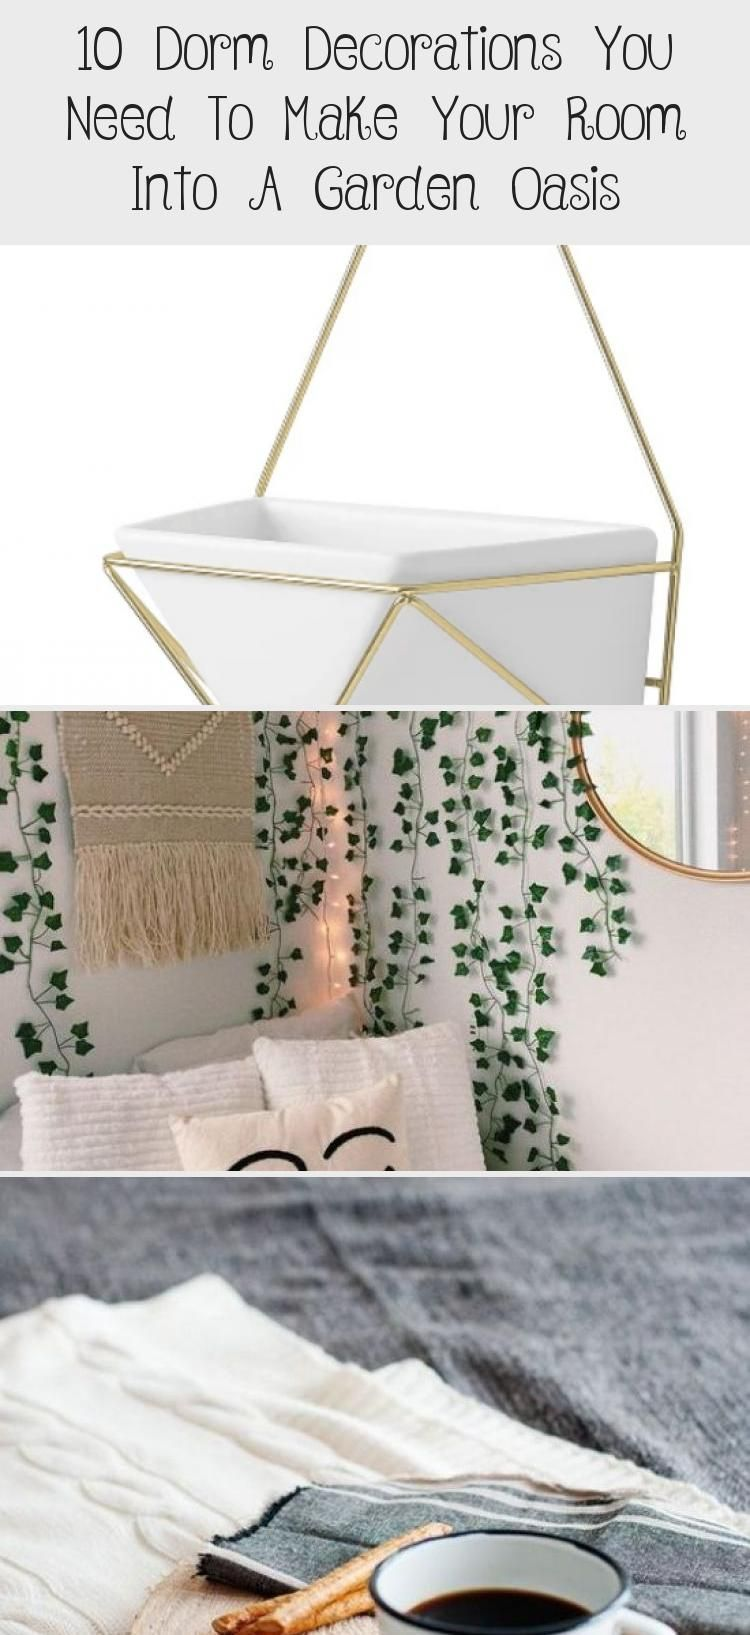 10 Dorm Decorations You Need To Make Your Room Into A Garden Oasis | boho